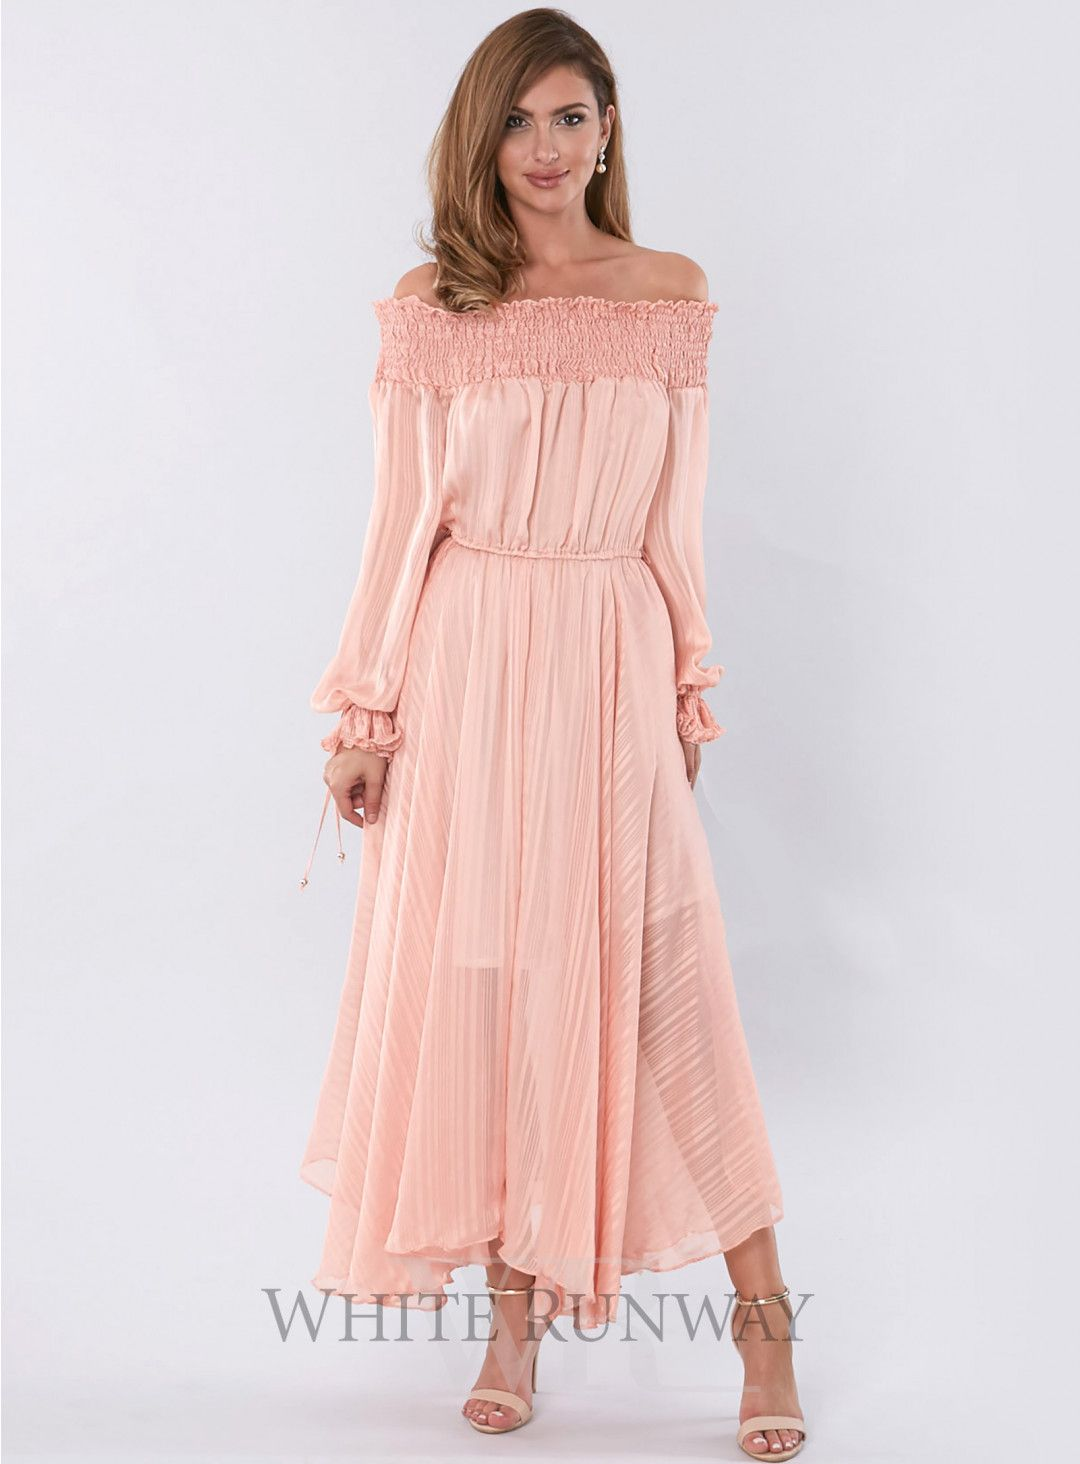 Primrose midi a gorgeous maxi dress by pasduchas a flowy off